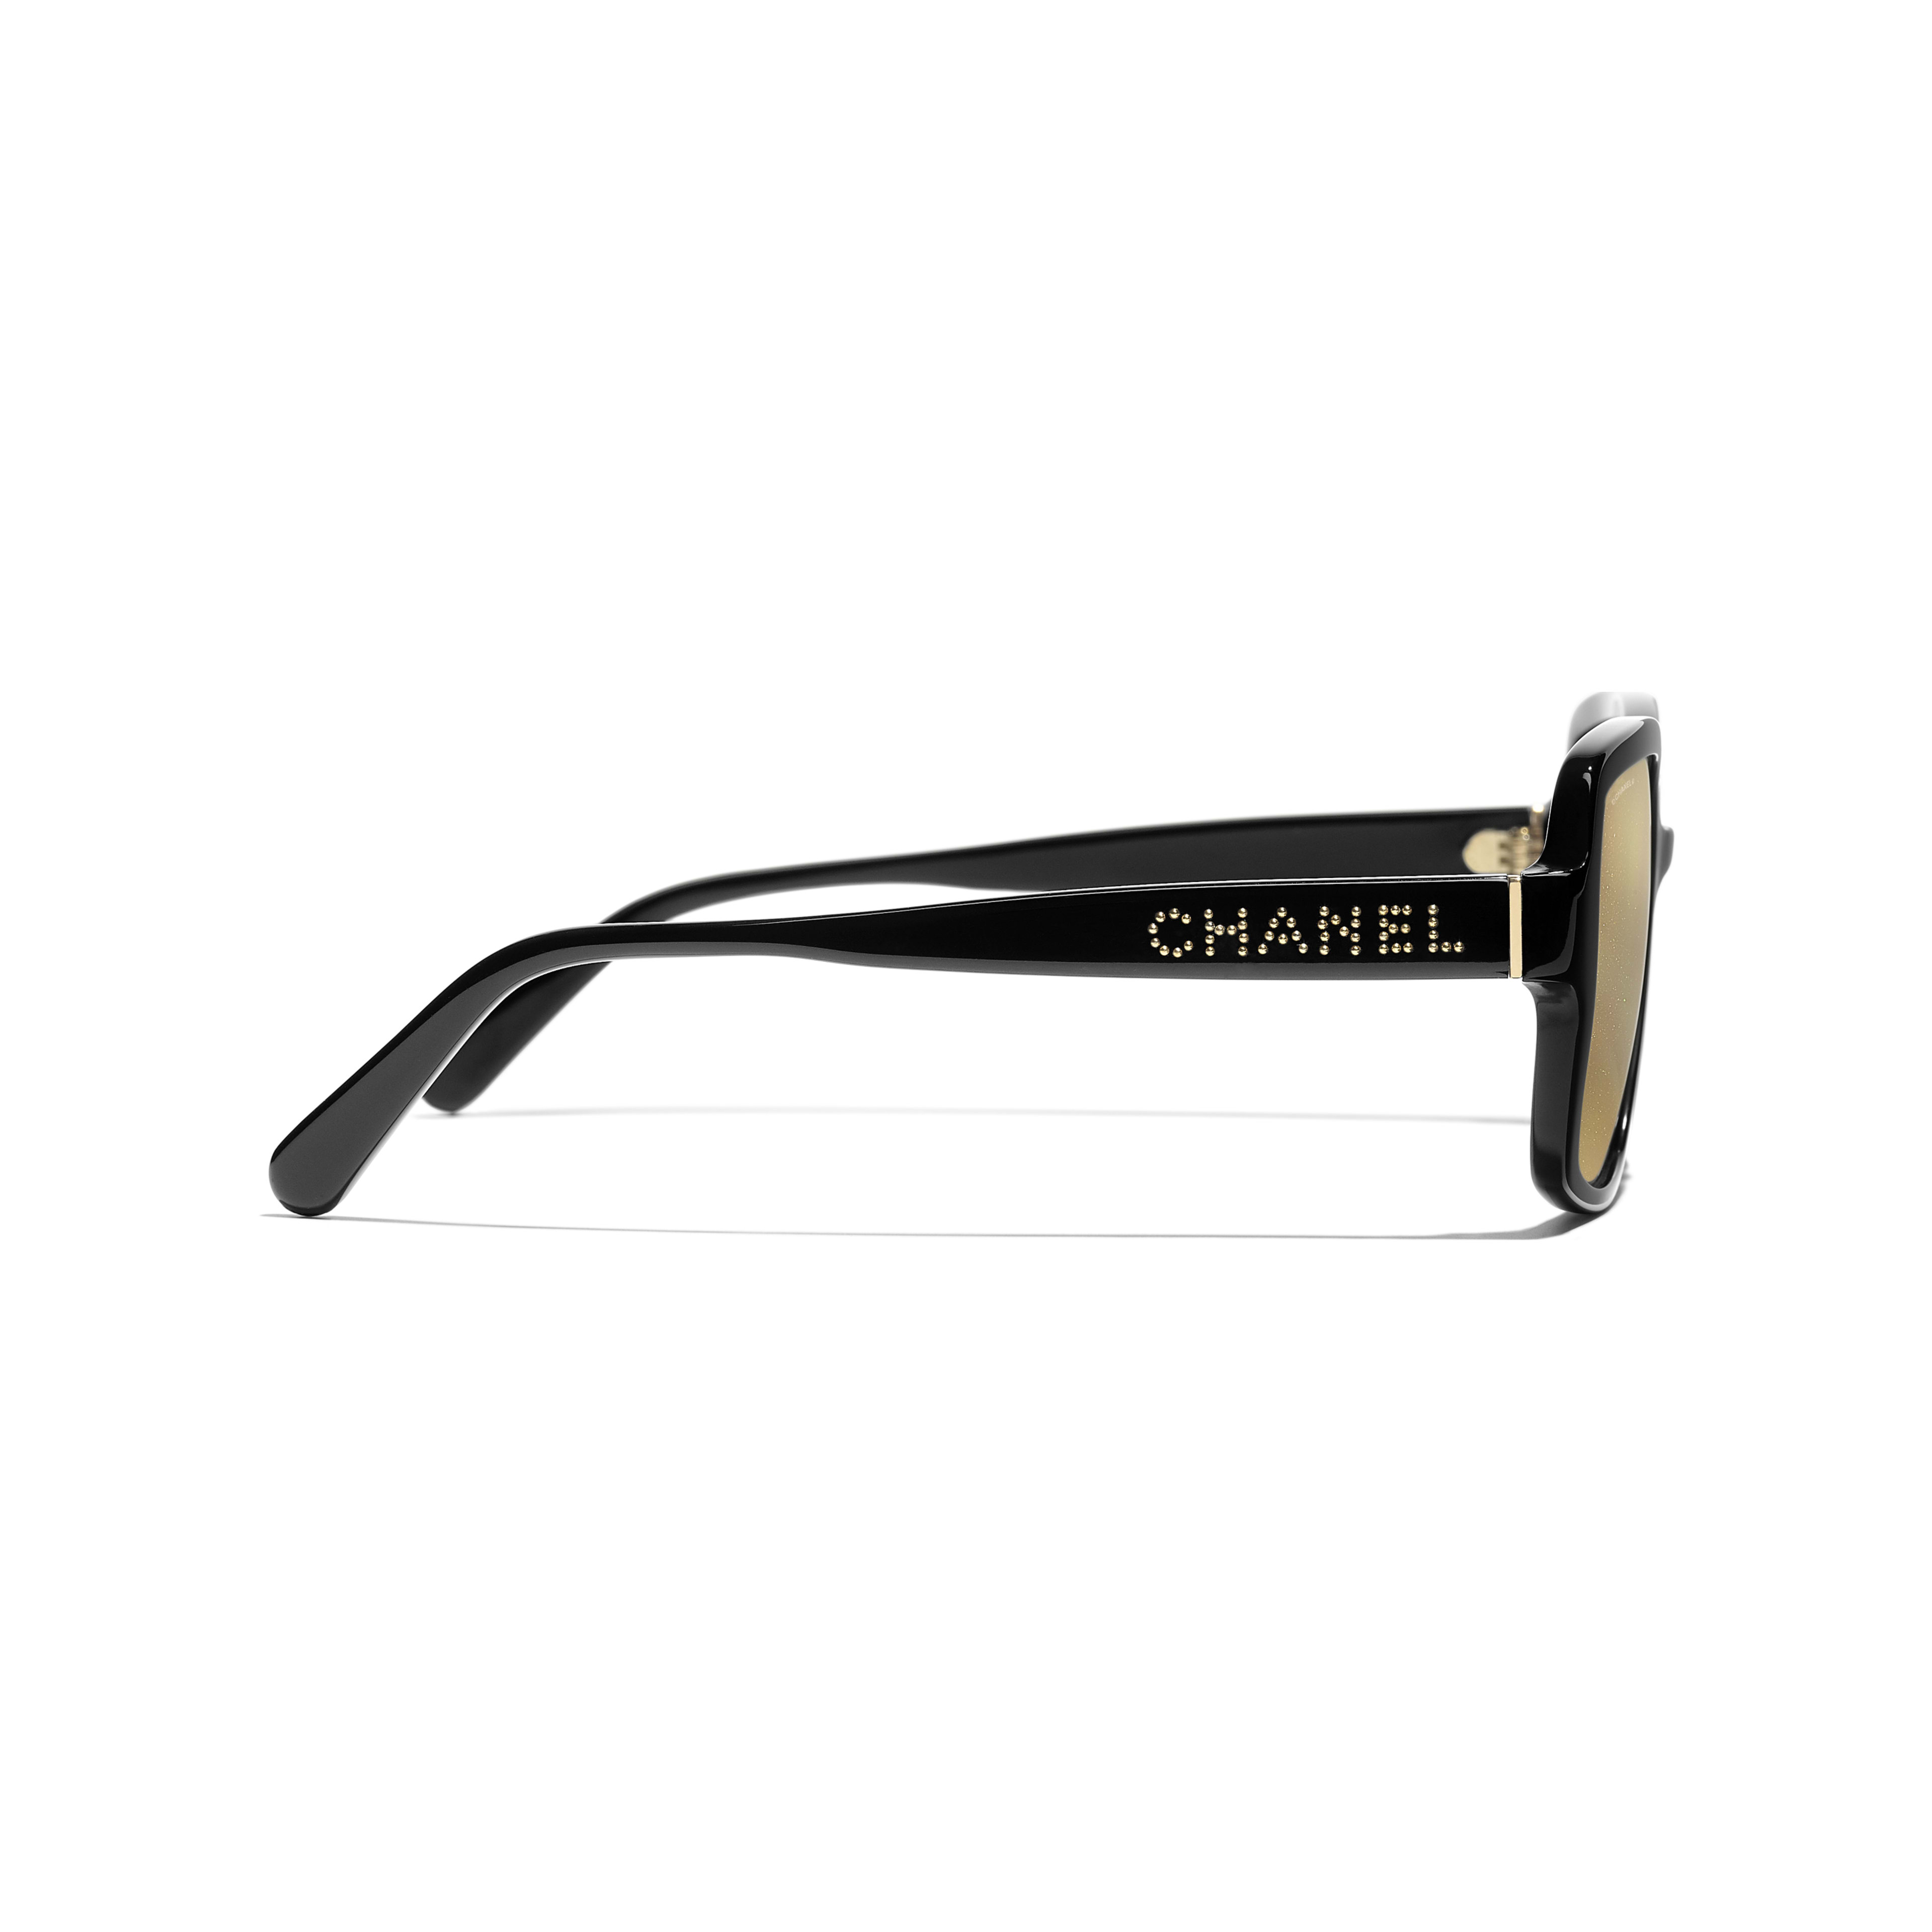 Square Sunglasses - Black - Acetate - Other view - see full sized version